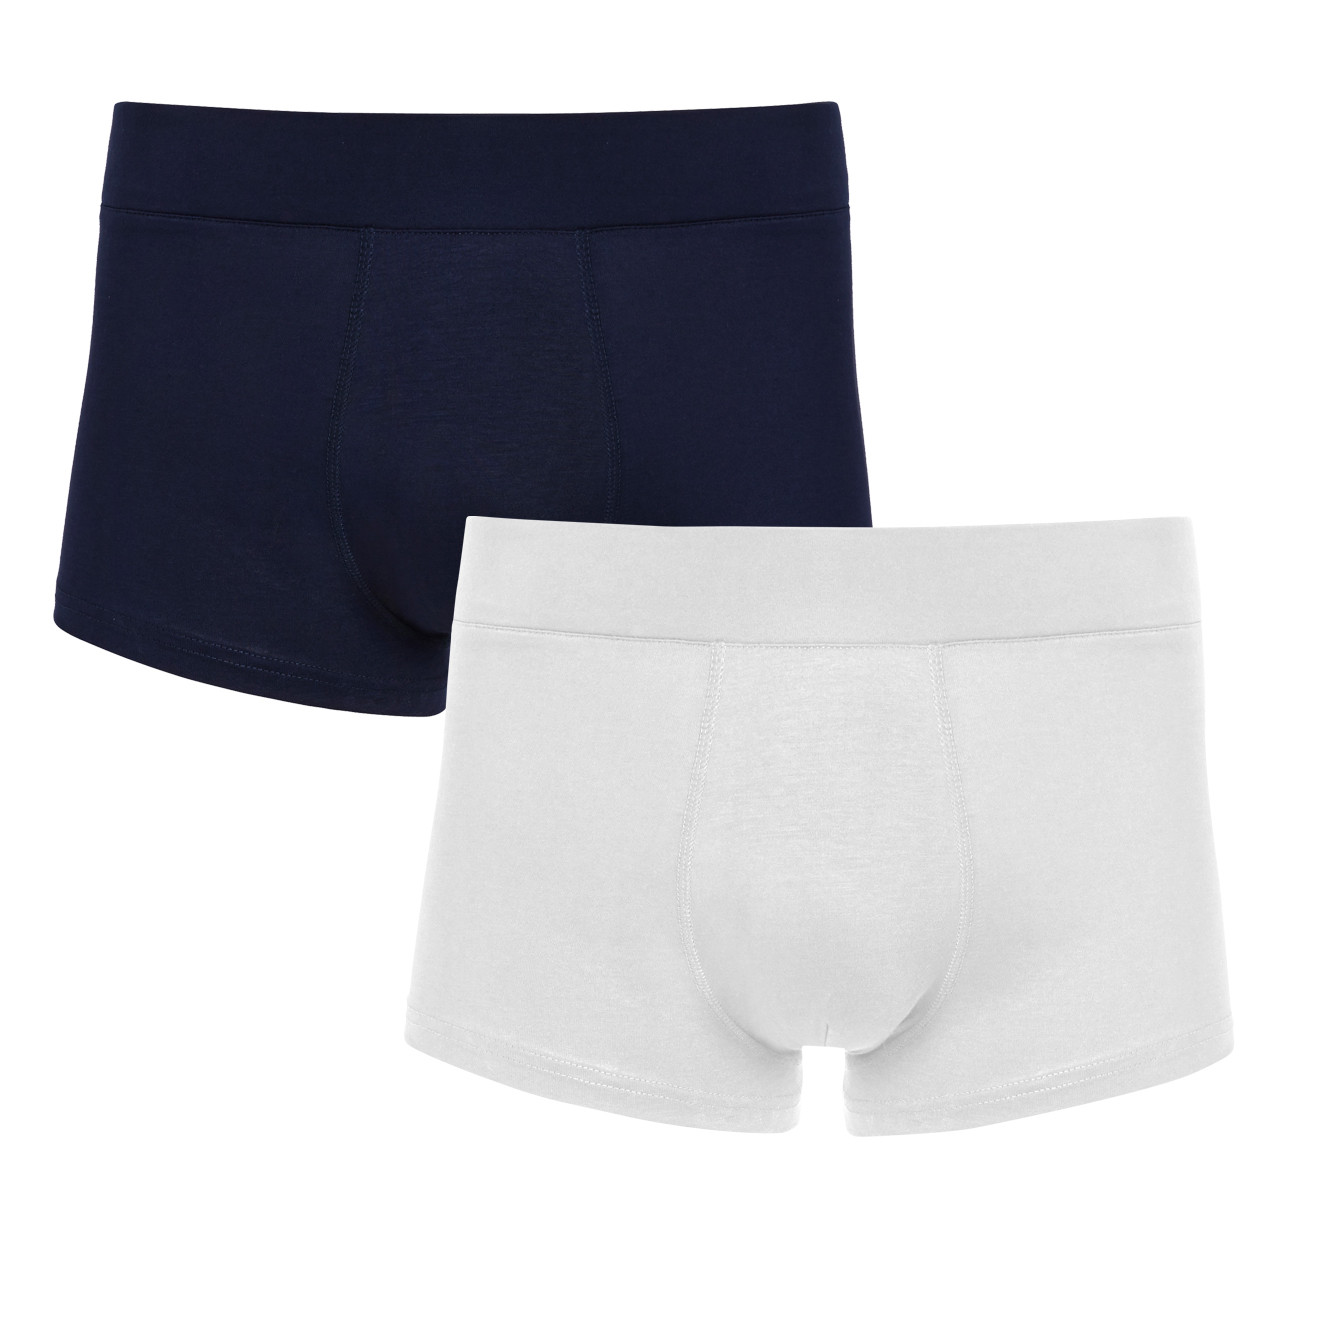 Hamilton & Hare The Jersey Trunk Two Pack